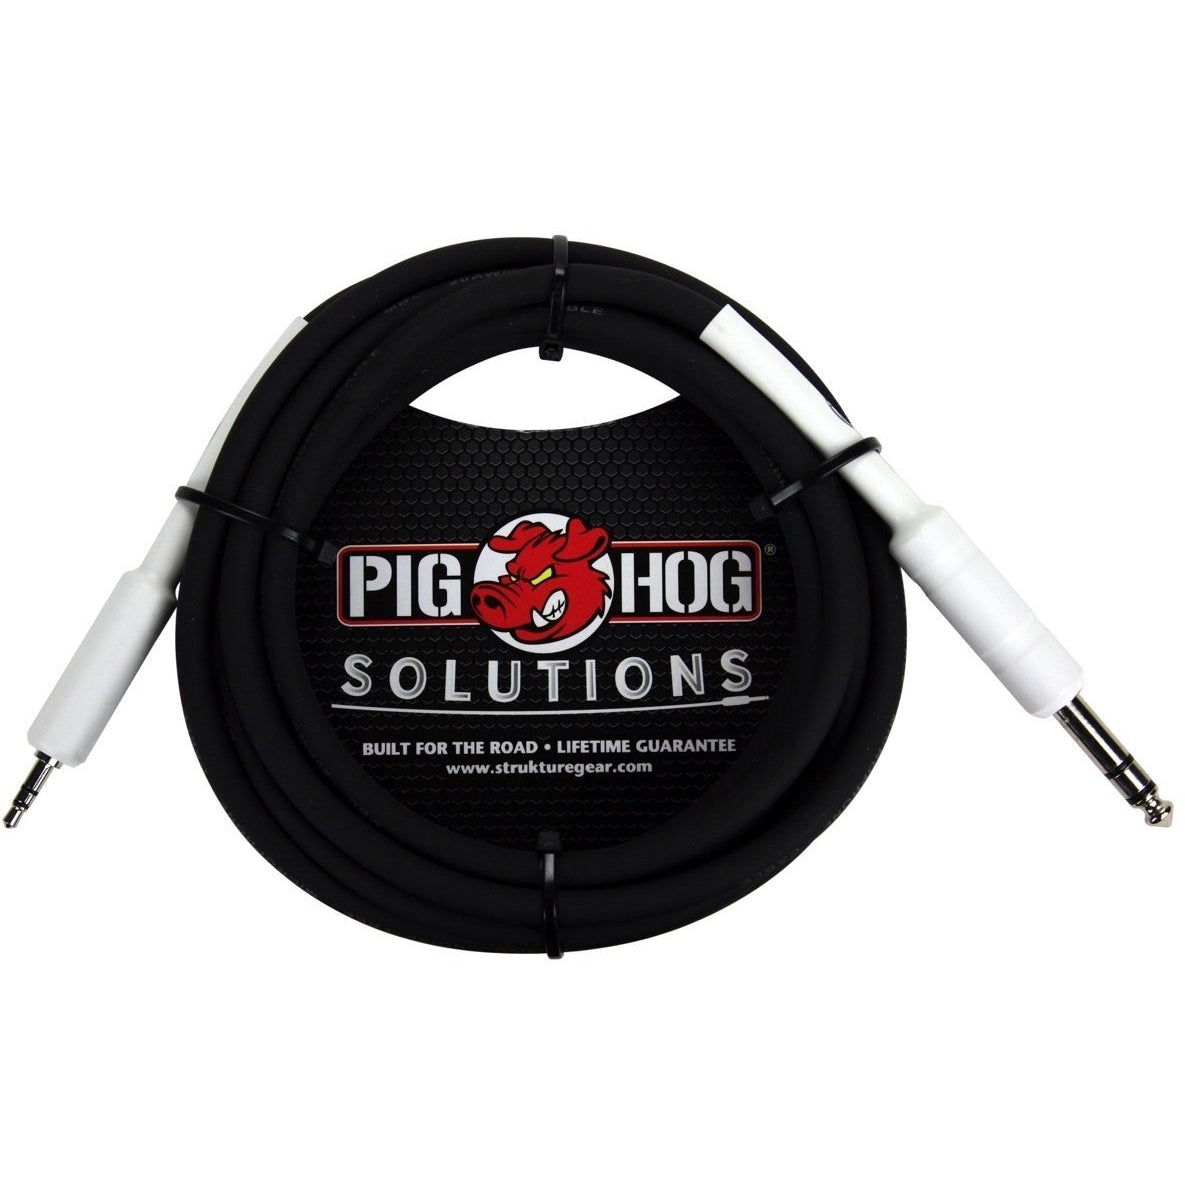 Pig Hog PX48J6 1/4 Inch TRS (Male) to 3.5mm (Male) Adaptor Cable, 10 Foot